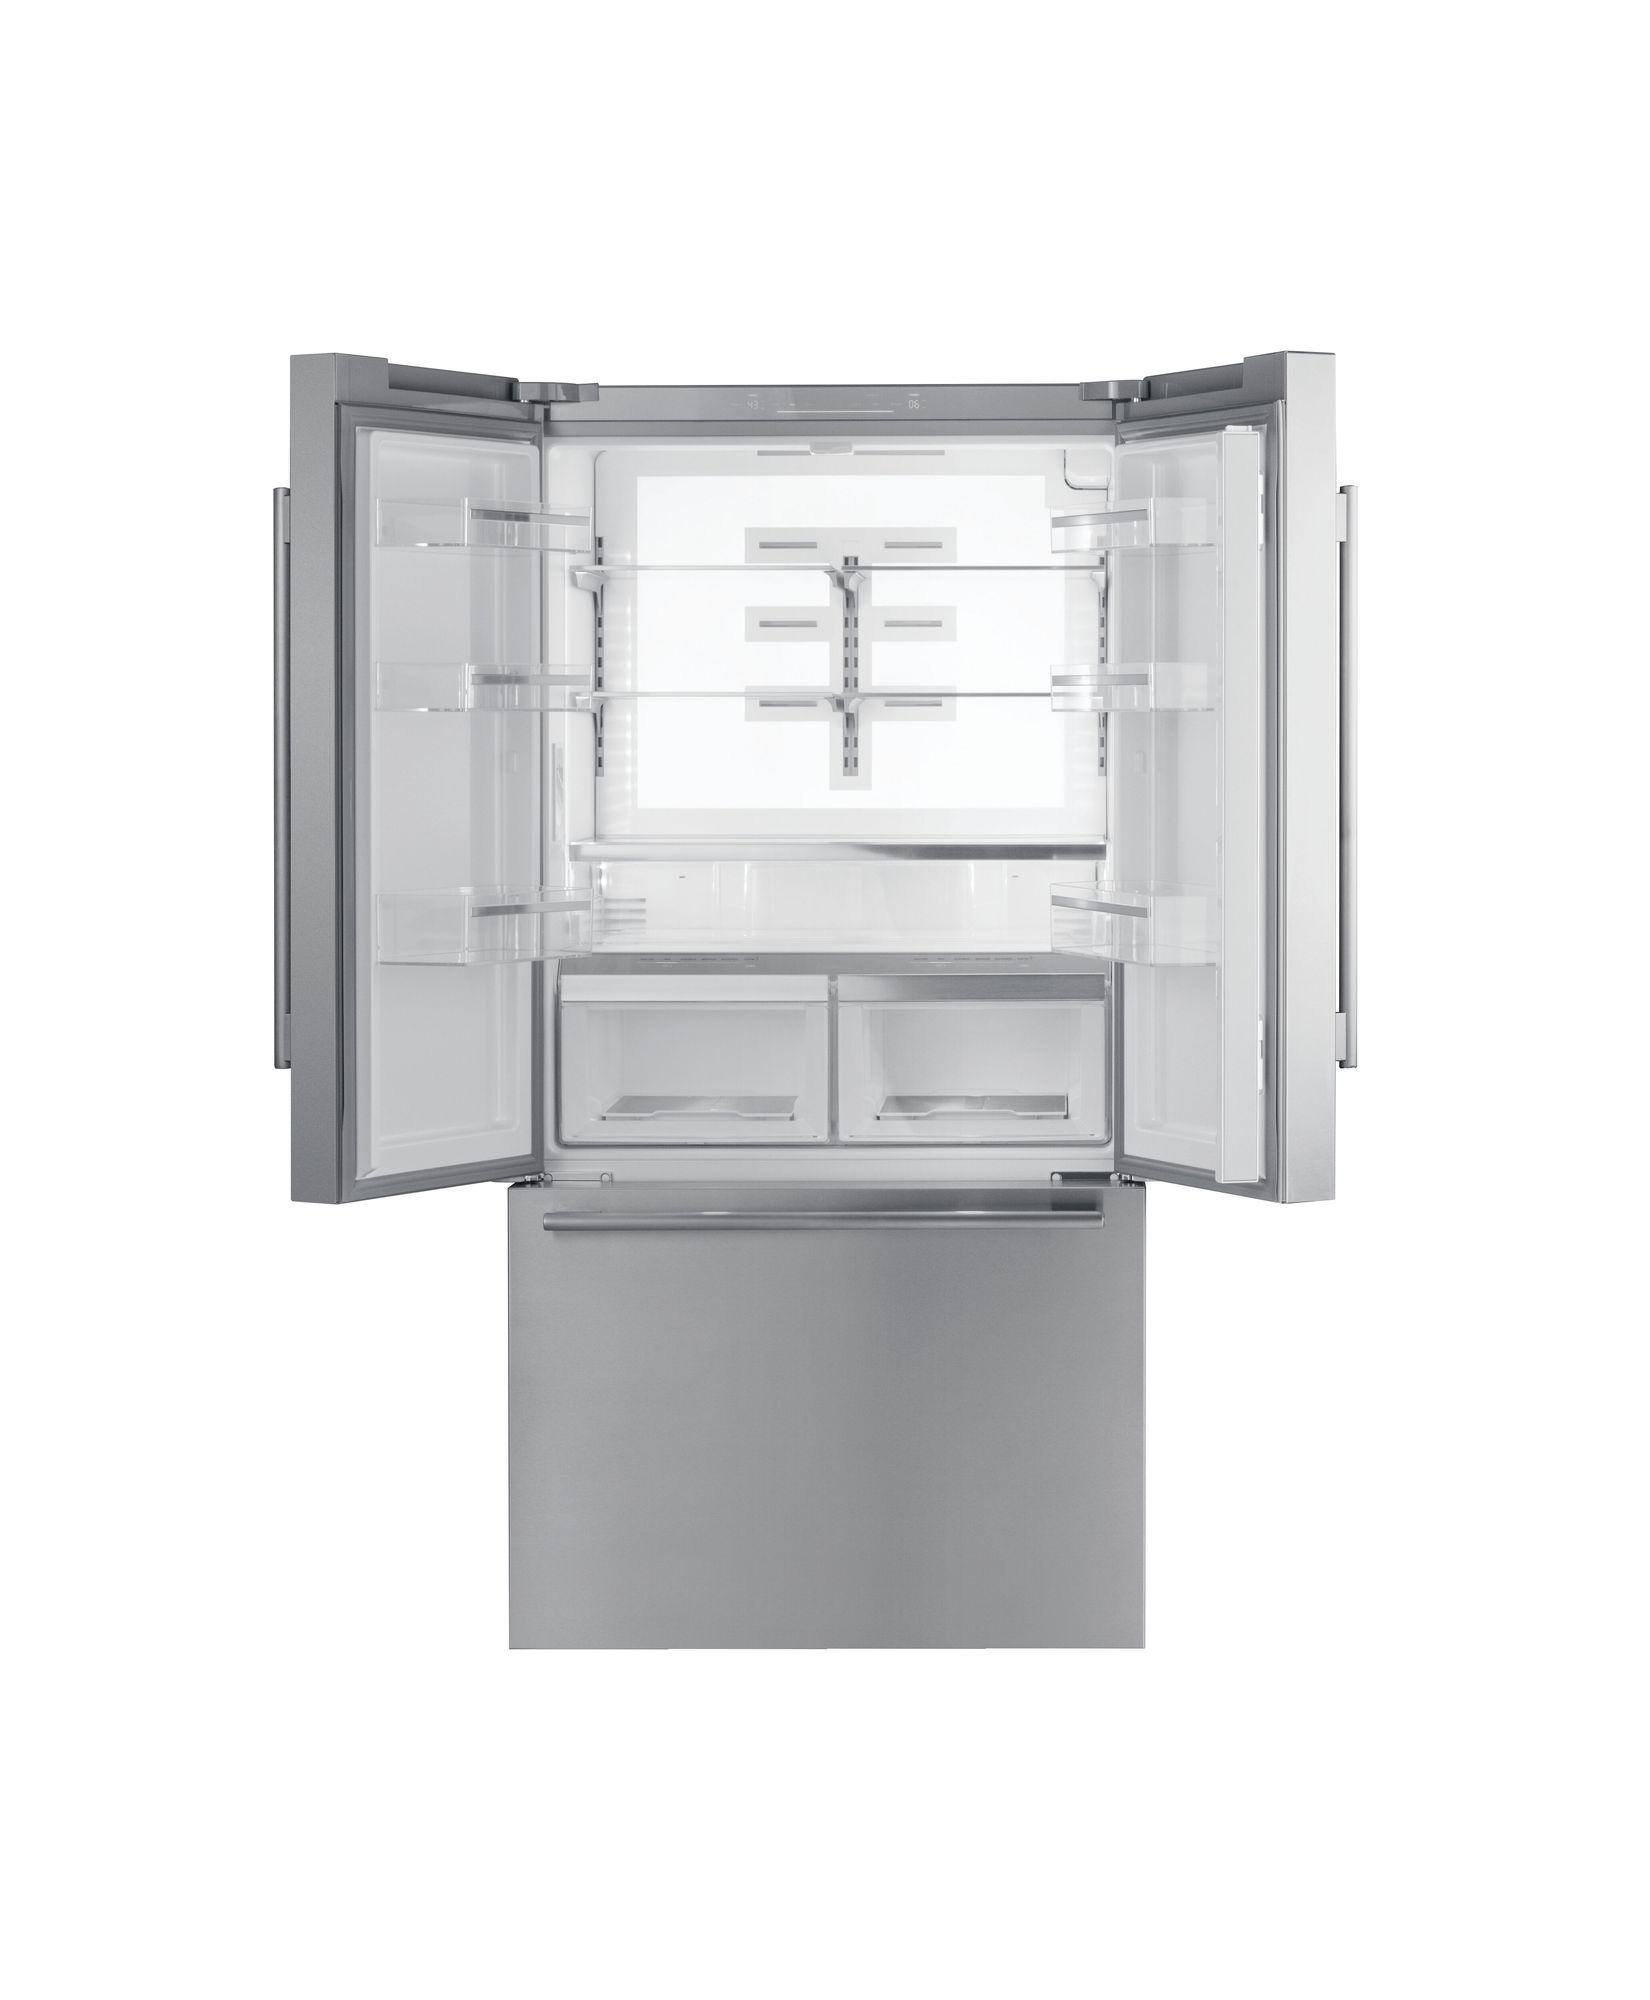 Freedom® French Door Bottom Mount Refrigerator 36'' Masterpiece® Stainless steel T36FT810NS